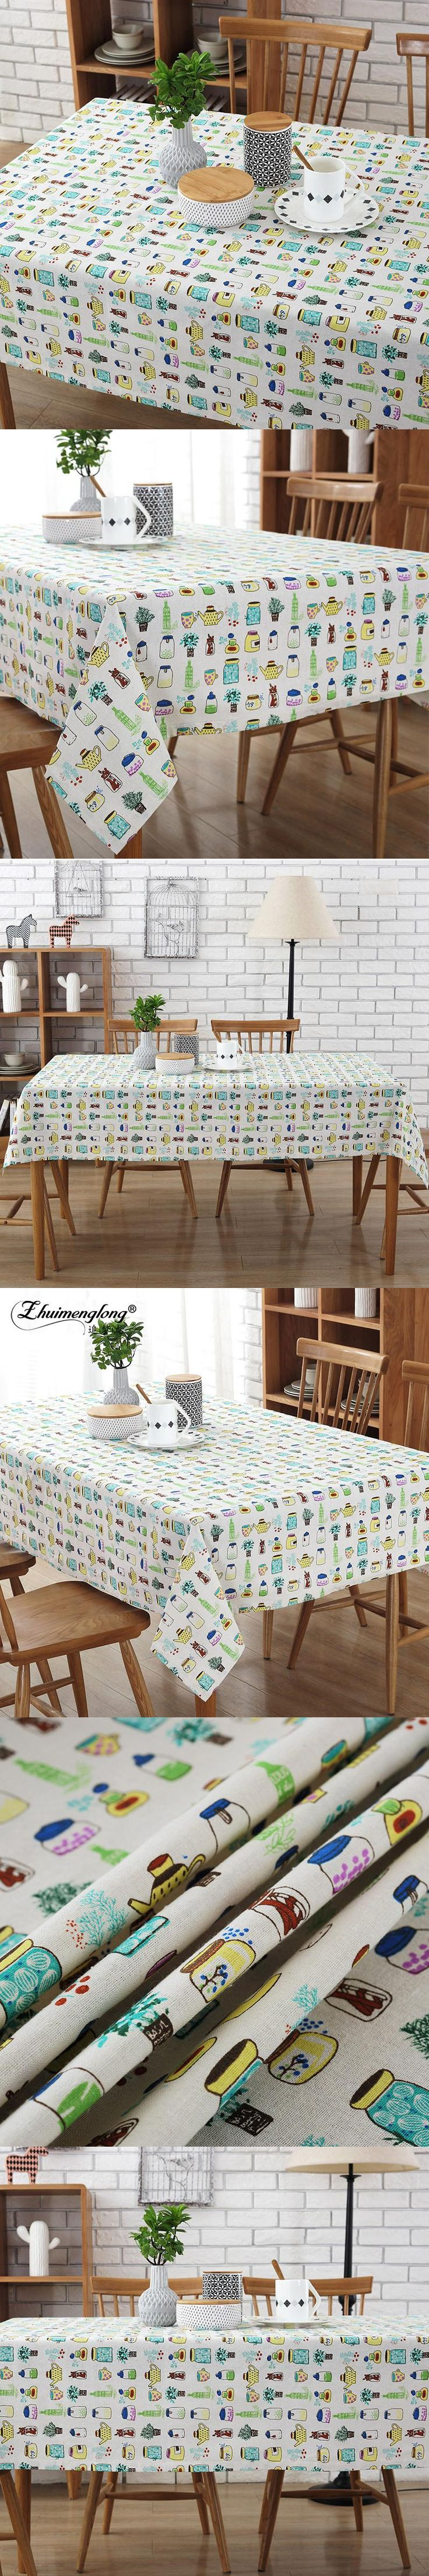 Zhuimenglong Tablecloth 8 sizes Kettle And Bottles Cotton And Linen Dust  Tea Cover Picnic Blanket Home